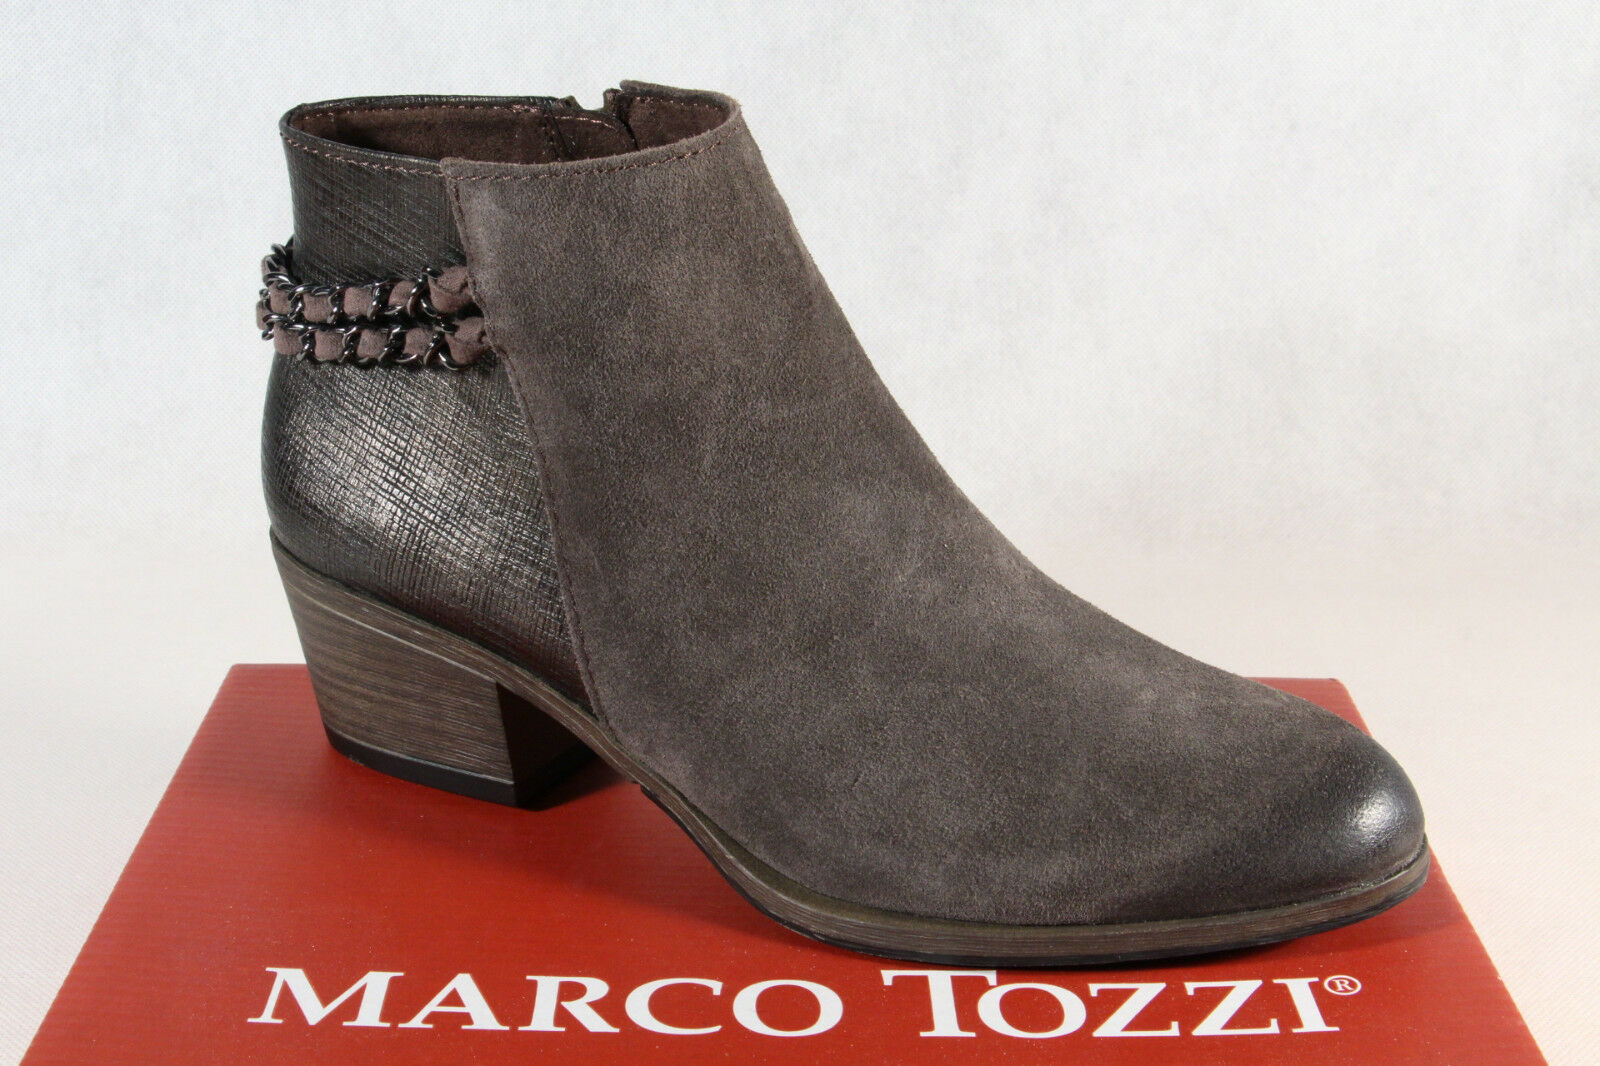 Marco Tozzi Women's Boots Winter Boots Boots 25317 New